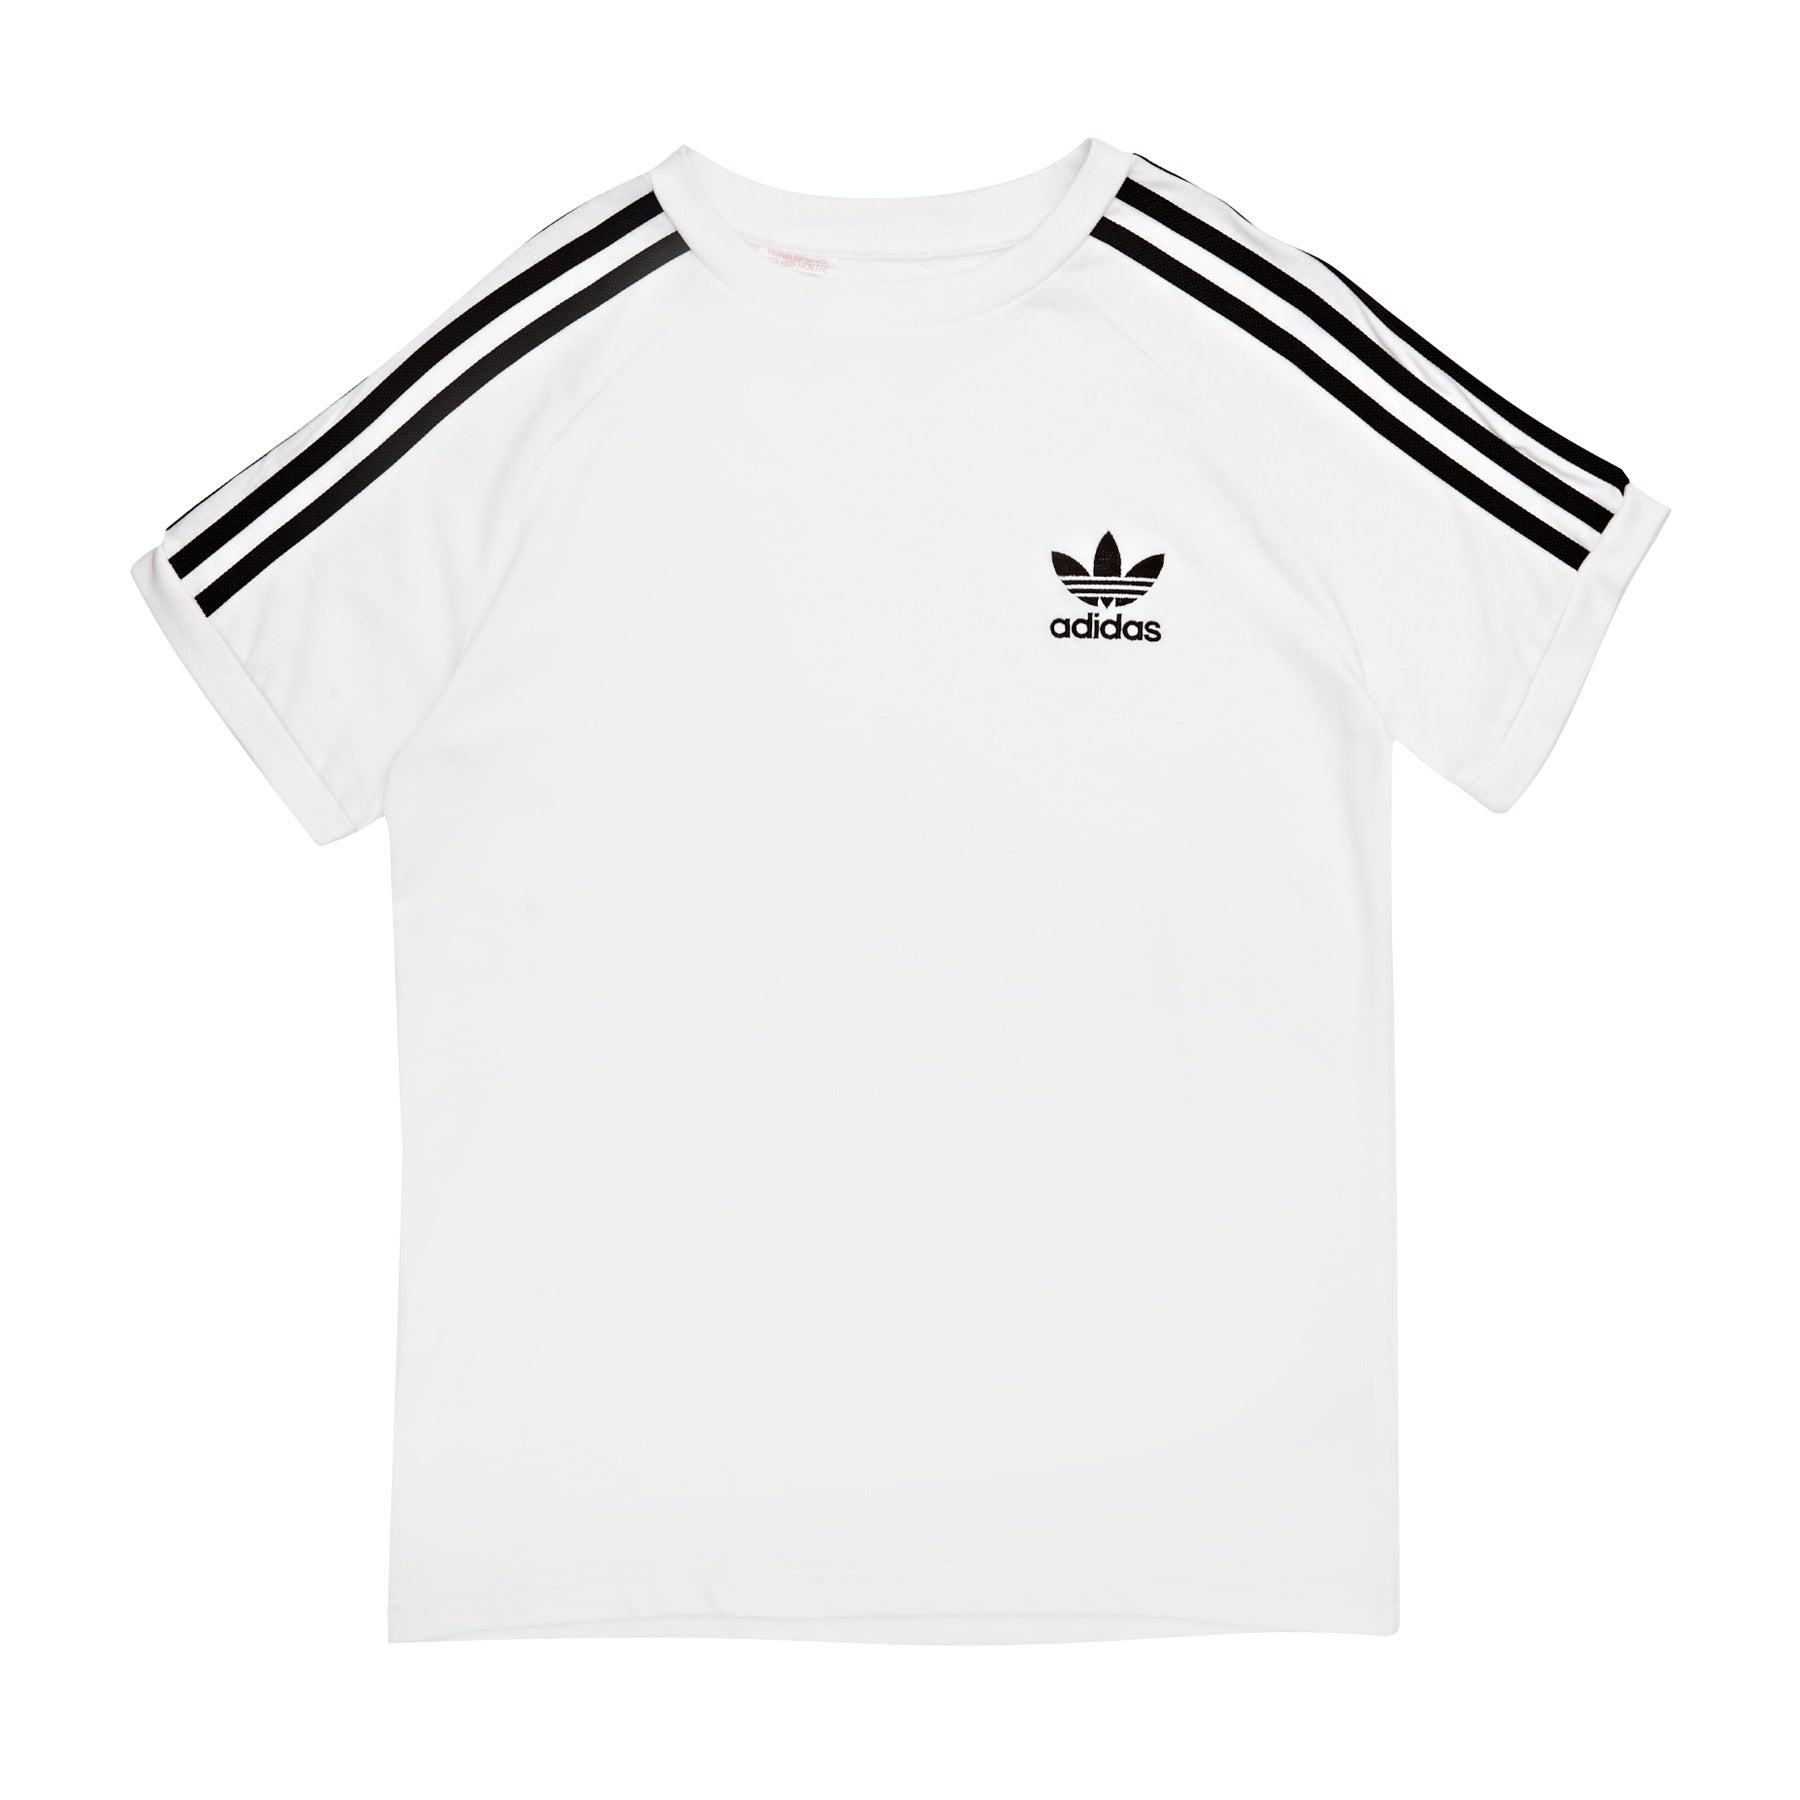 Camiseta de manga corta Boys Adidas Originals California - White Black